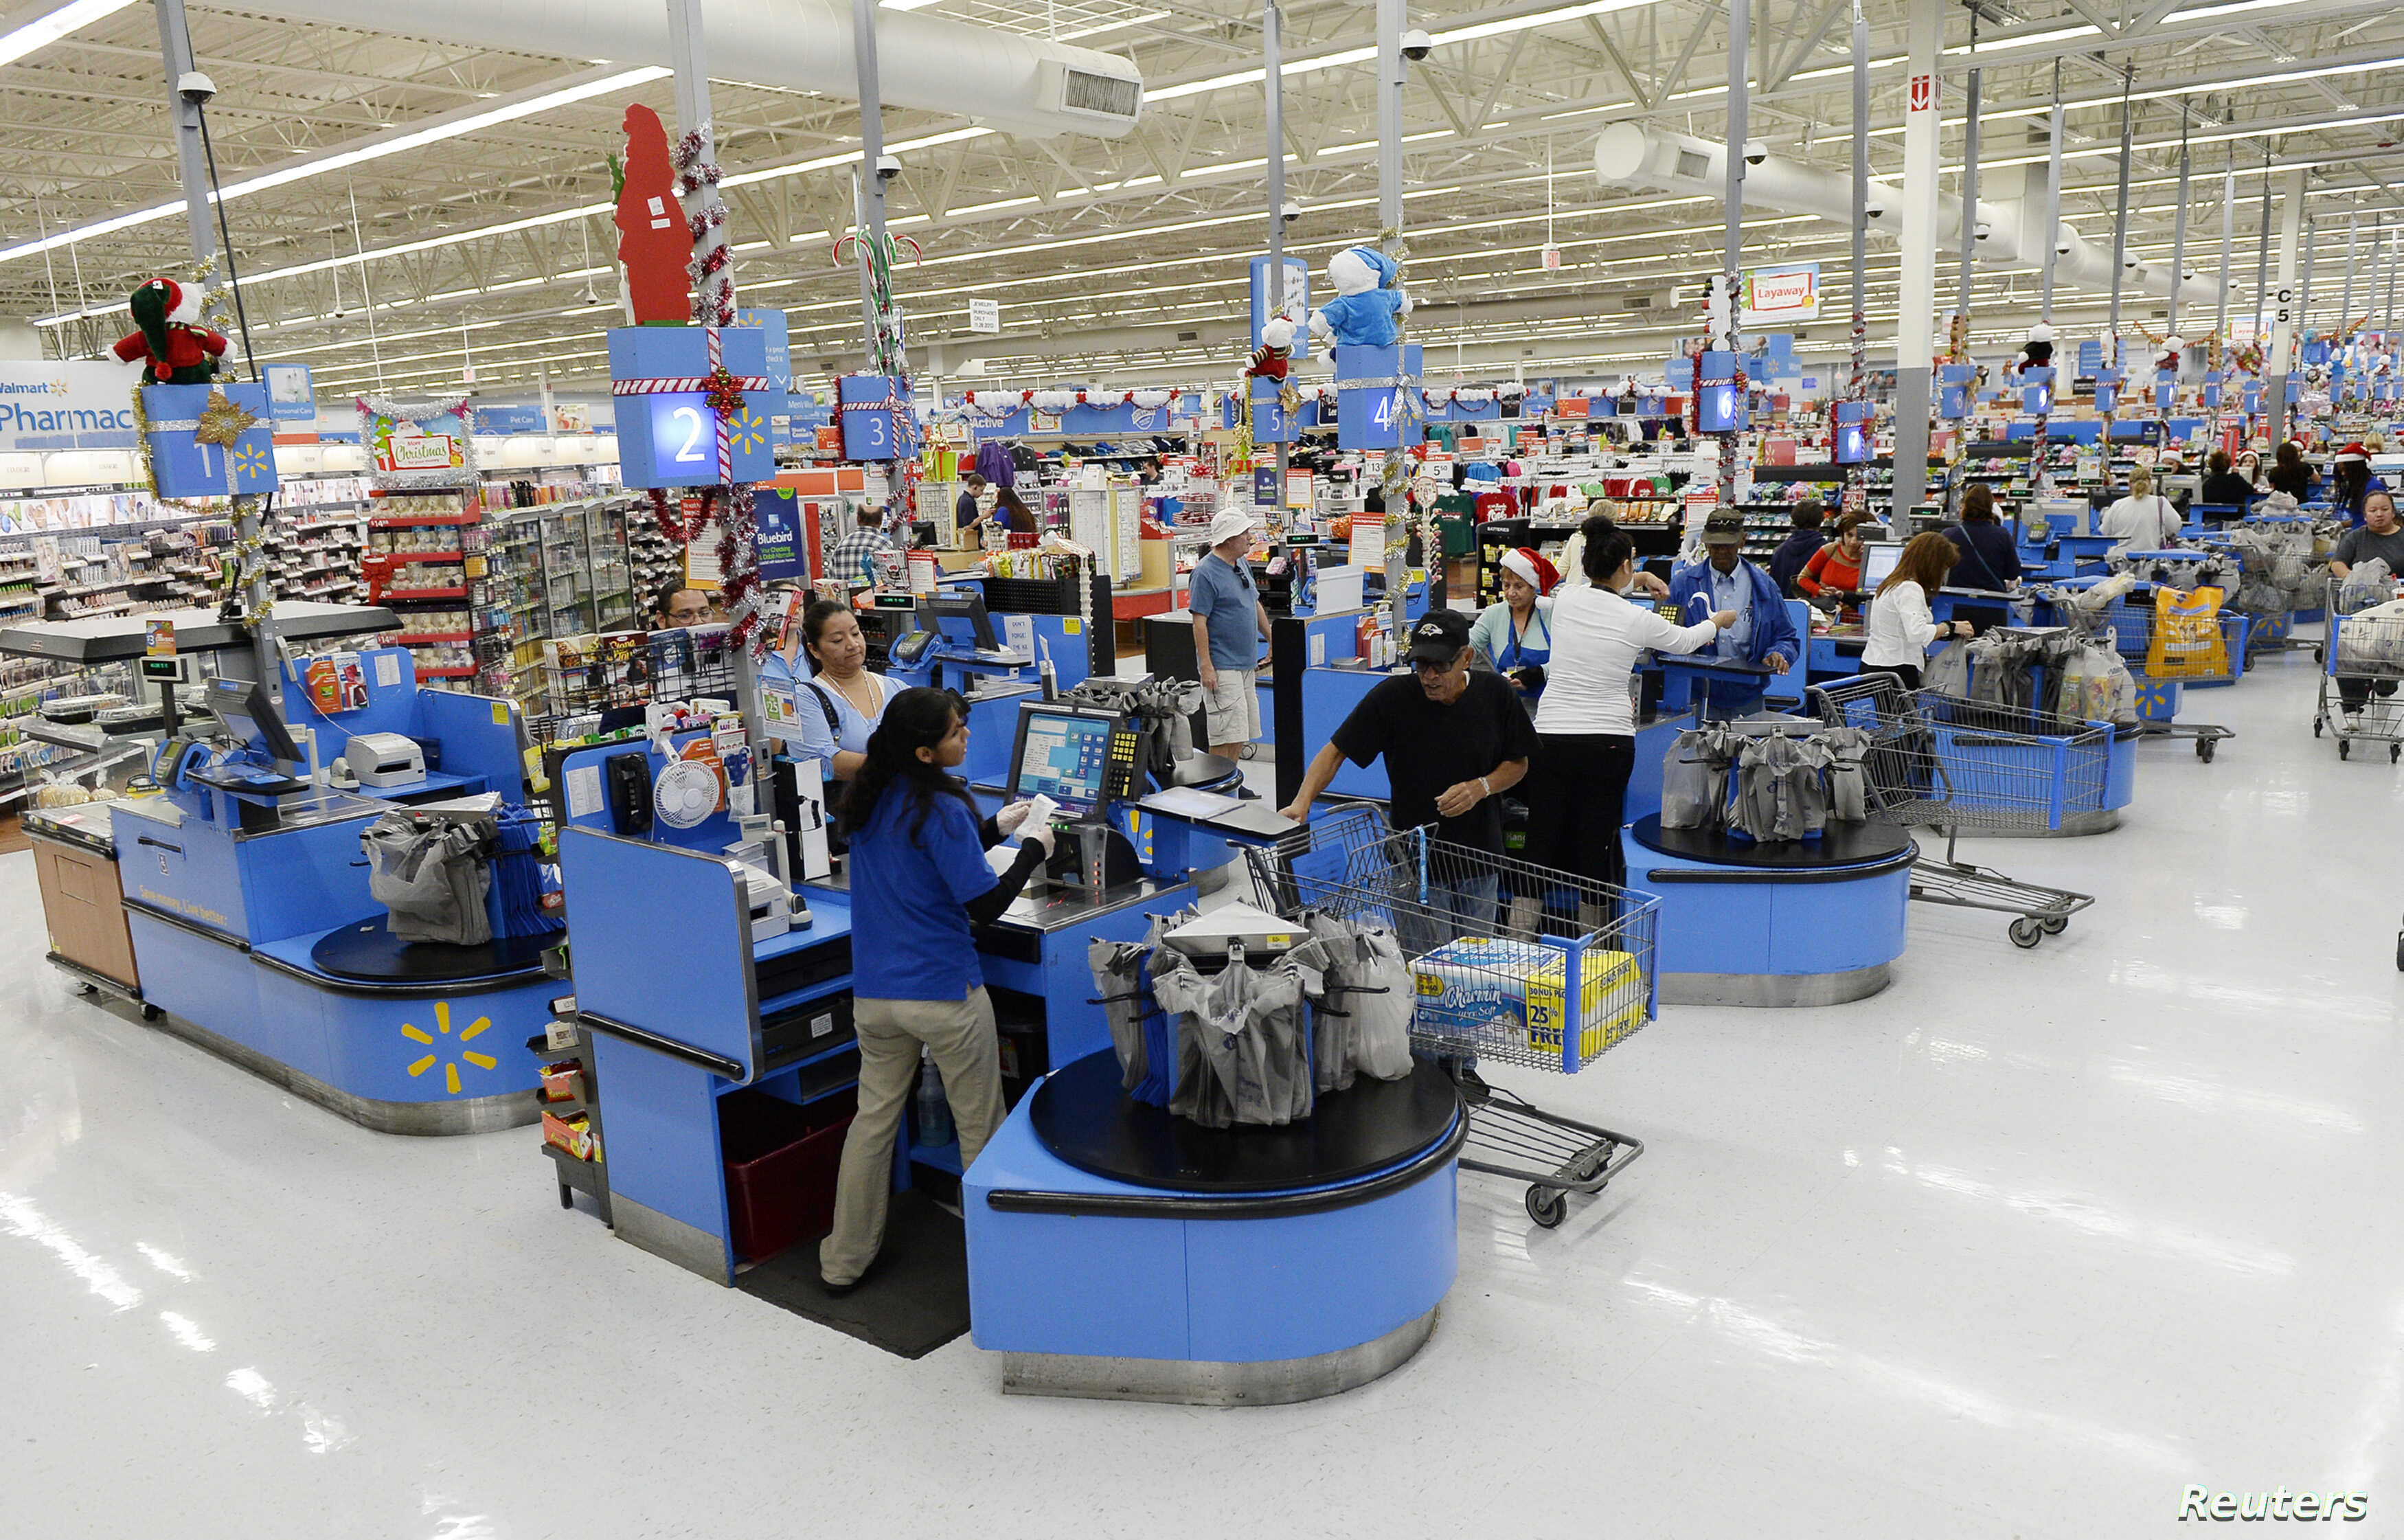 Walmart Hikes Minimum Wage, Announces Layoffs on Same Day | Voice of